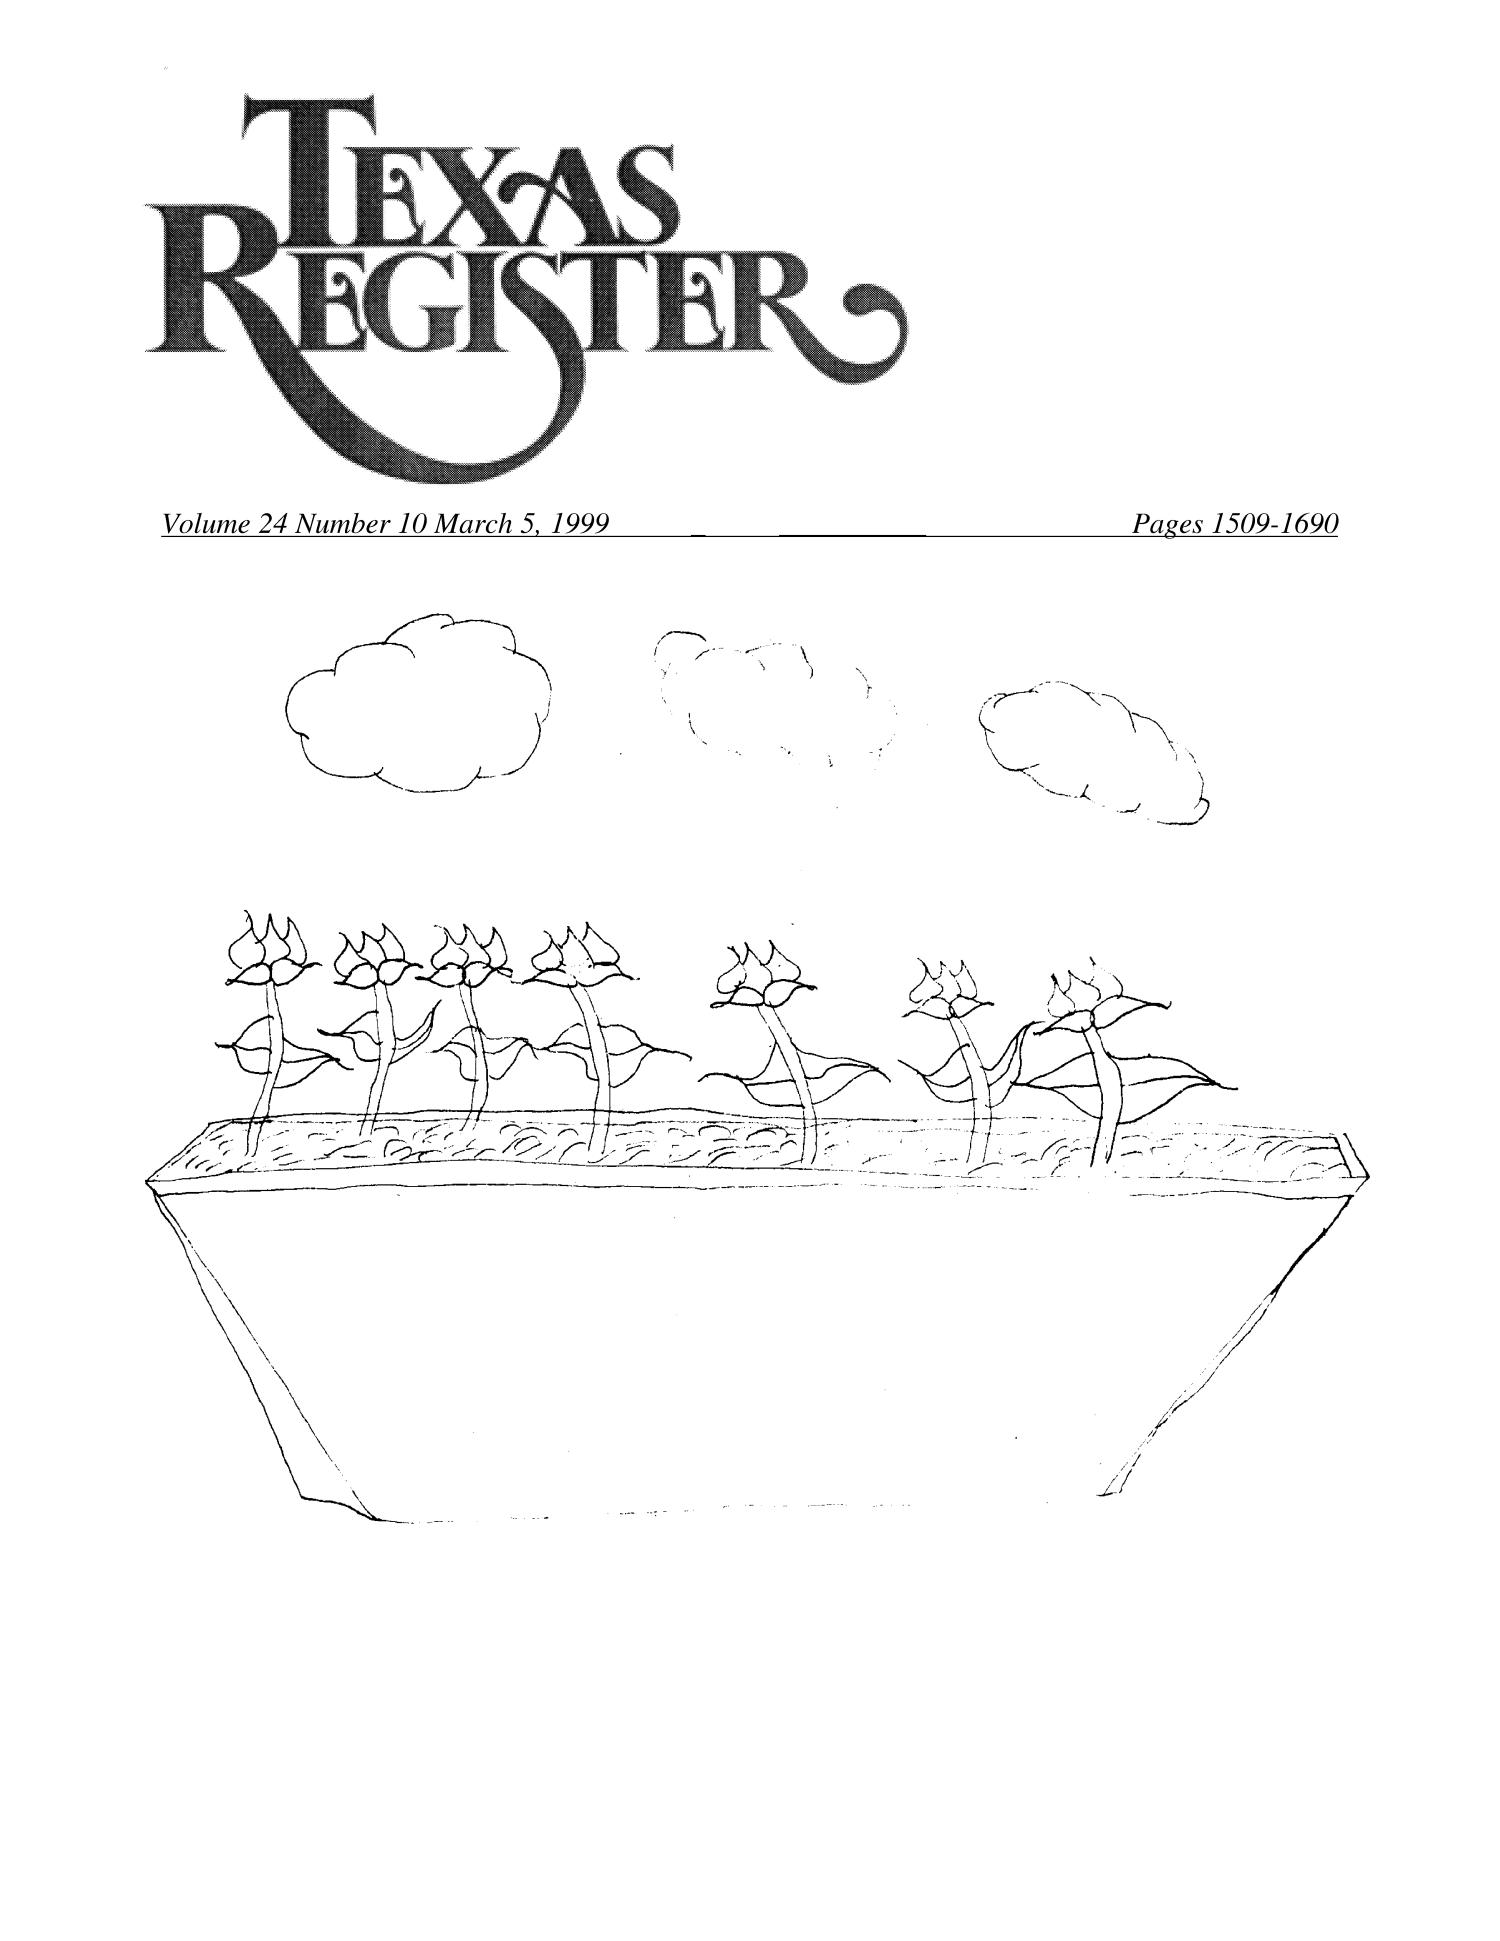 Texas Register, Volume 24, Number 10, Pages 1509-1690, March 5, 1999                                                                                                      1509